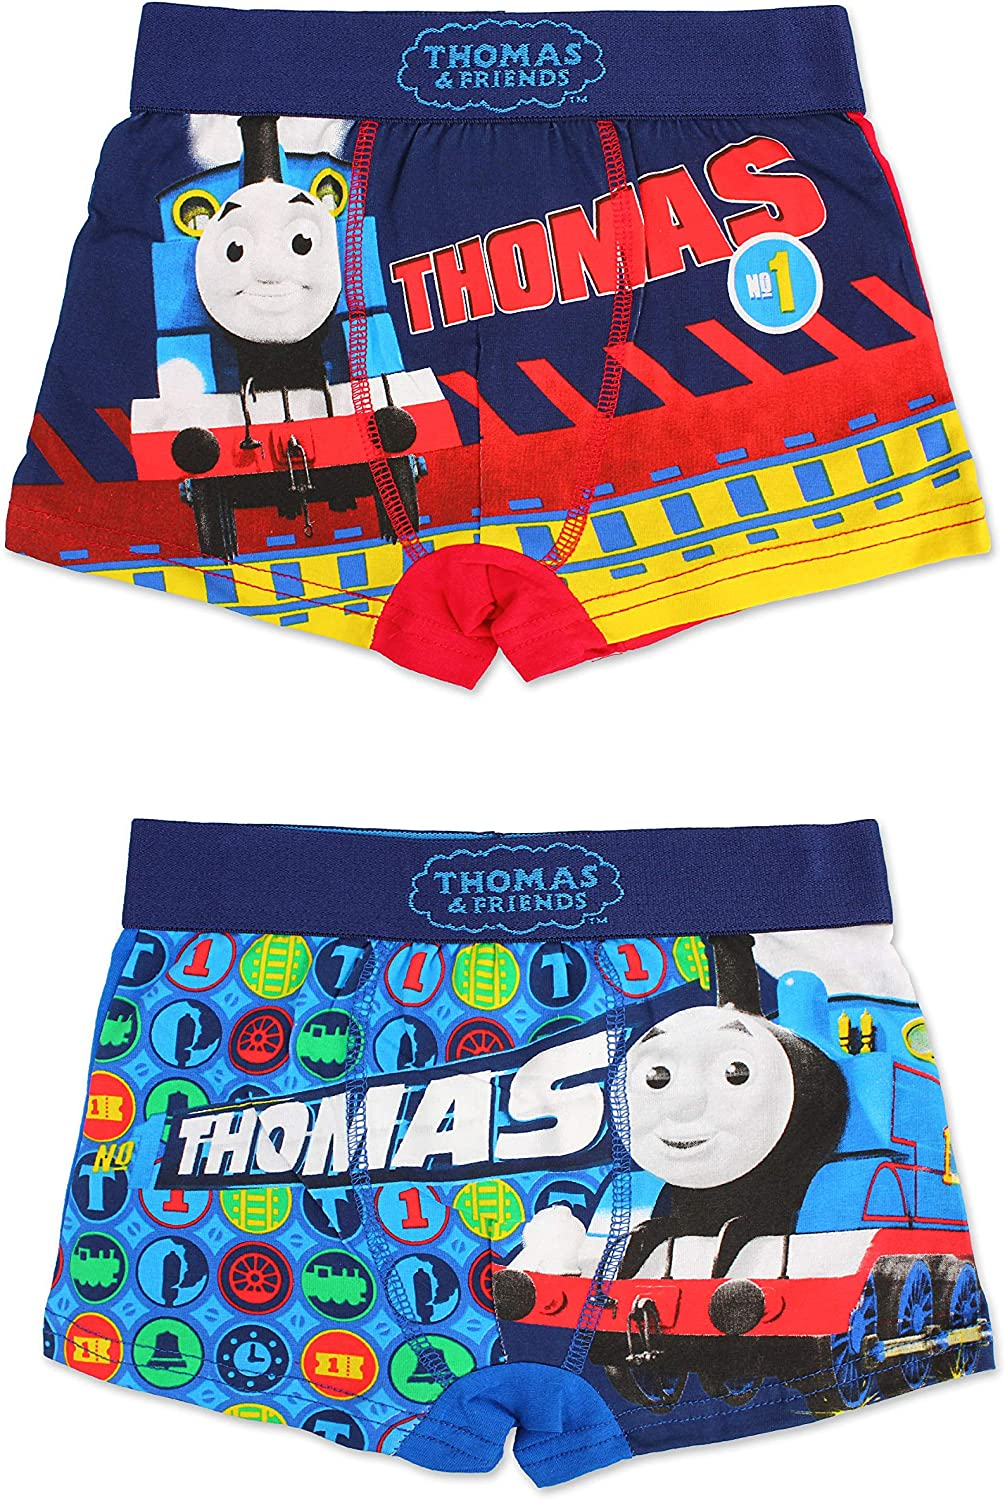 Boys Thomas Trunk 2 in A Pack Kids Thomas Boxer Shorts Trunk Age 2-8 Years